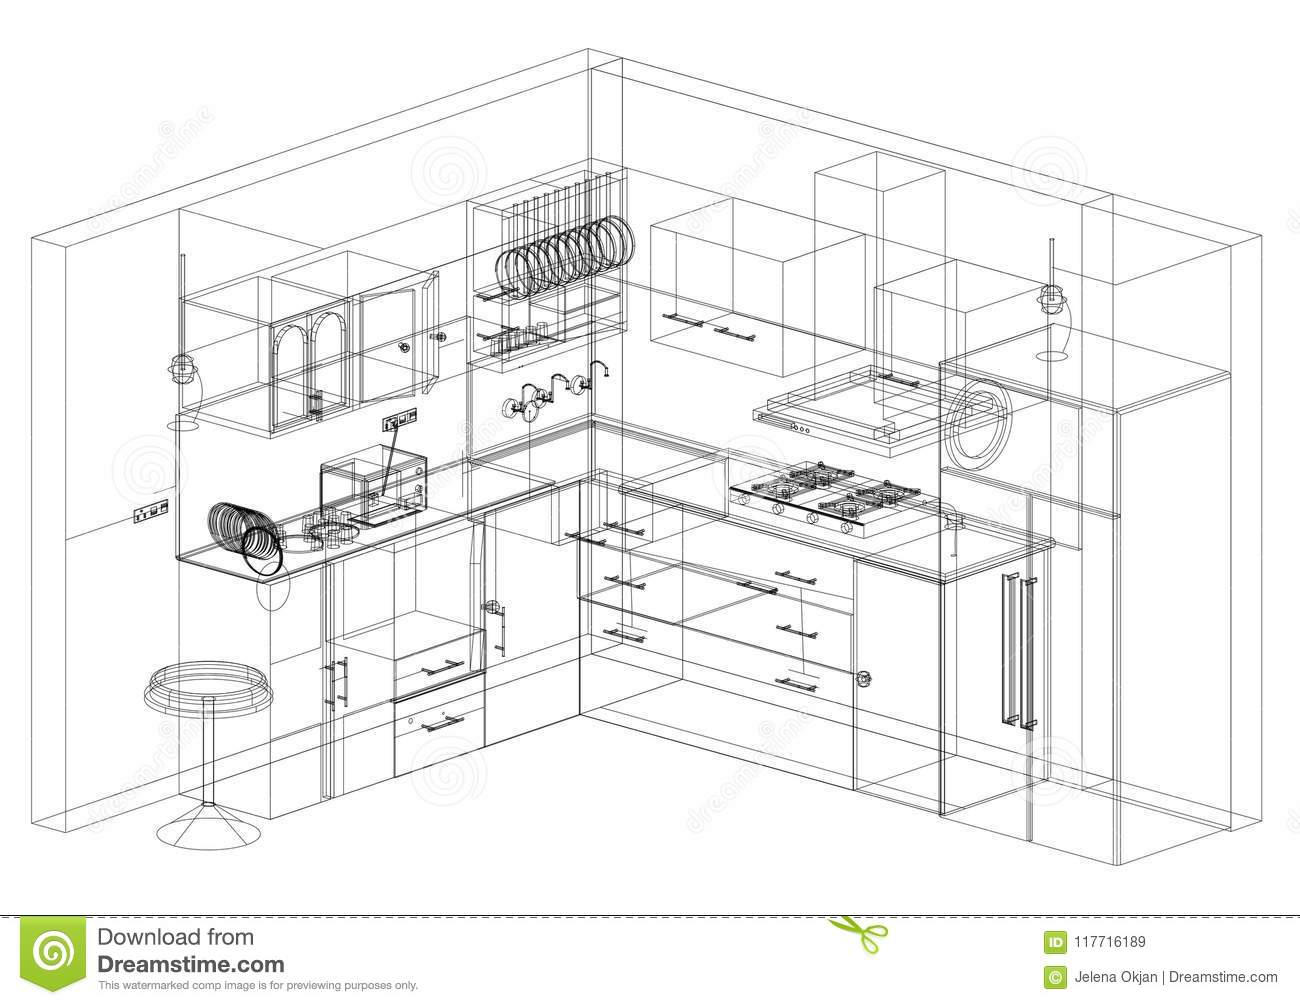 Kitchen design blueprint isolated stock illustration download comp malvernweather Images